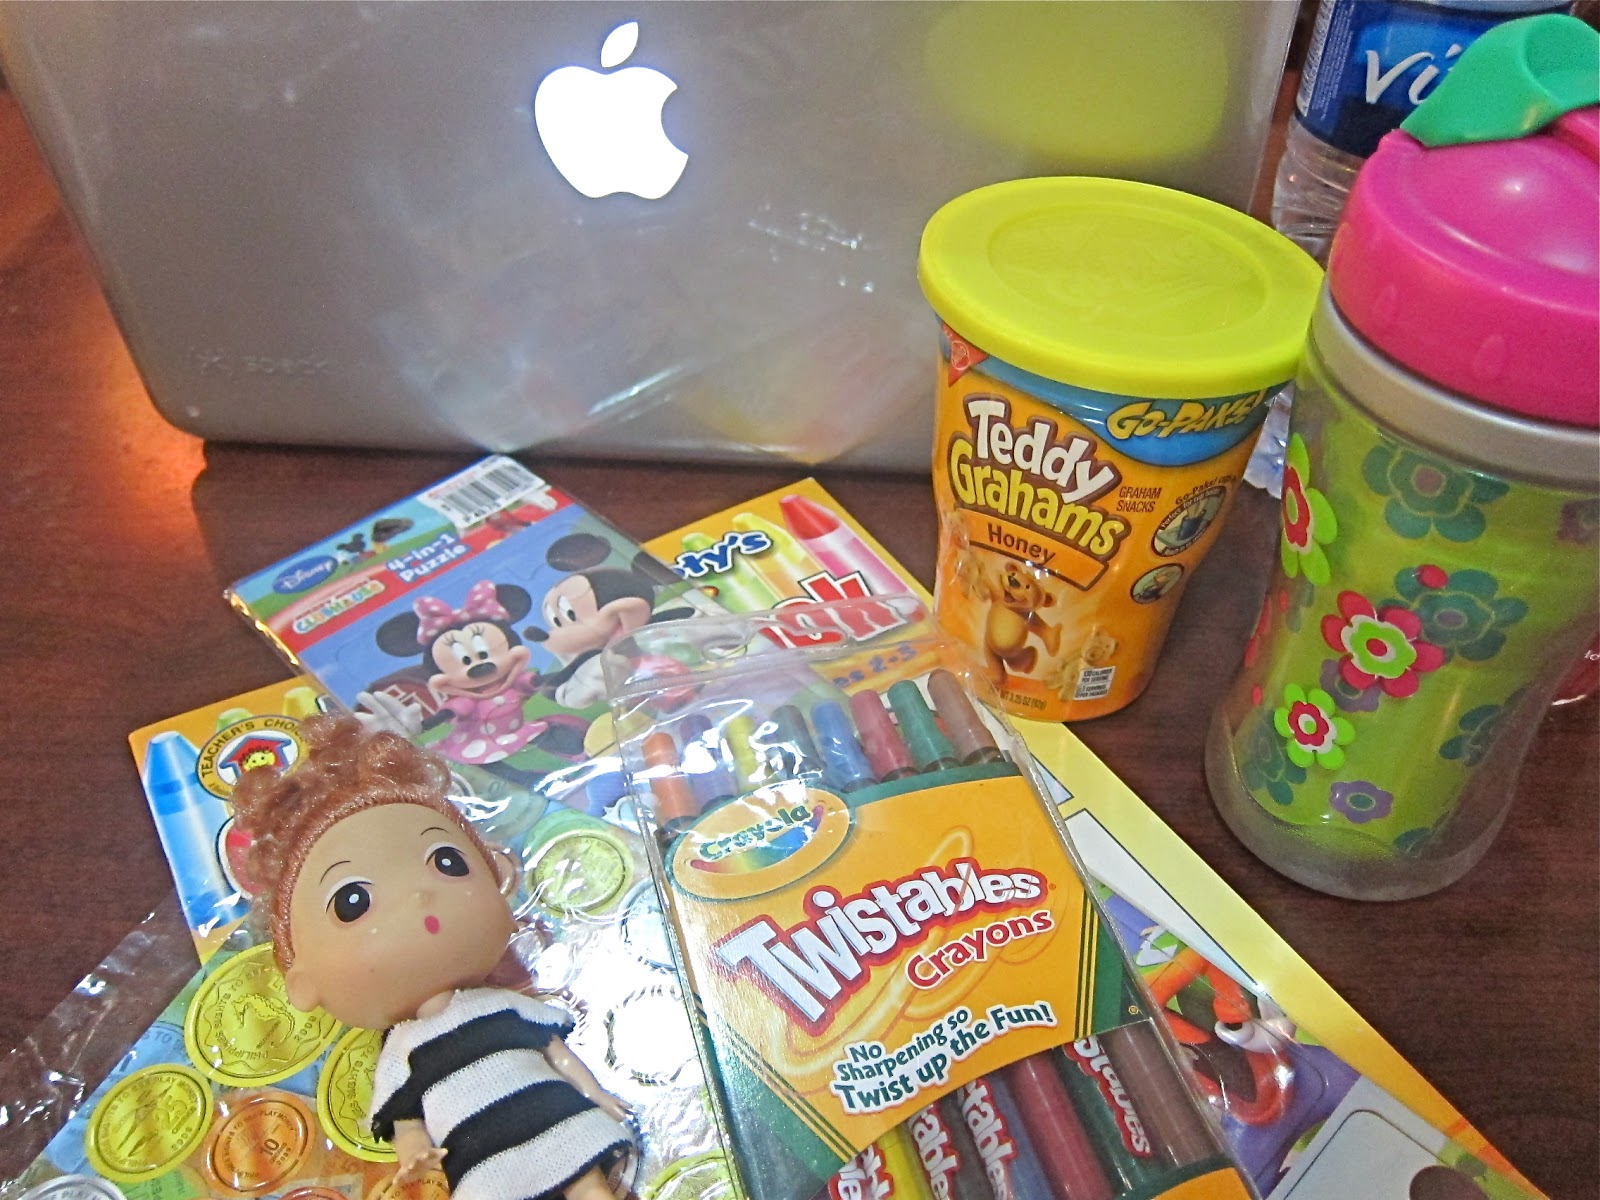 The Essentials Twistable Crayons Coloring Book A Little Doll From Ginger Snaps Teddy Grahams